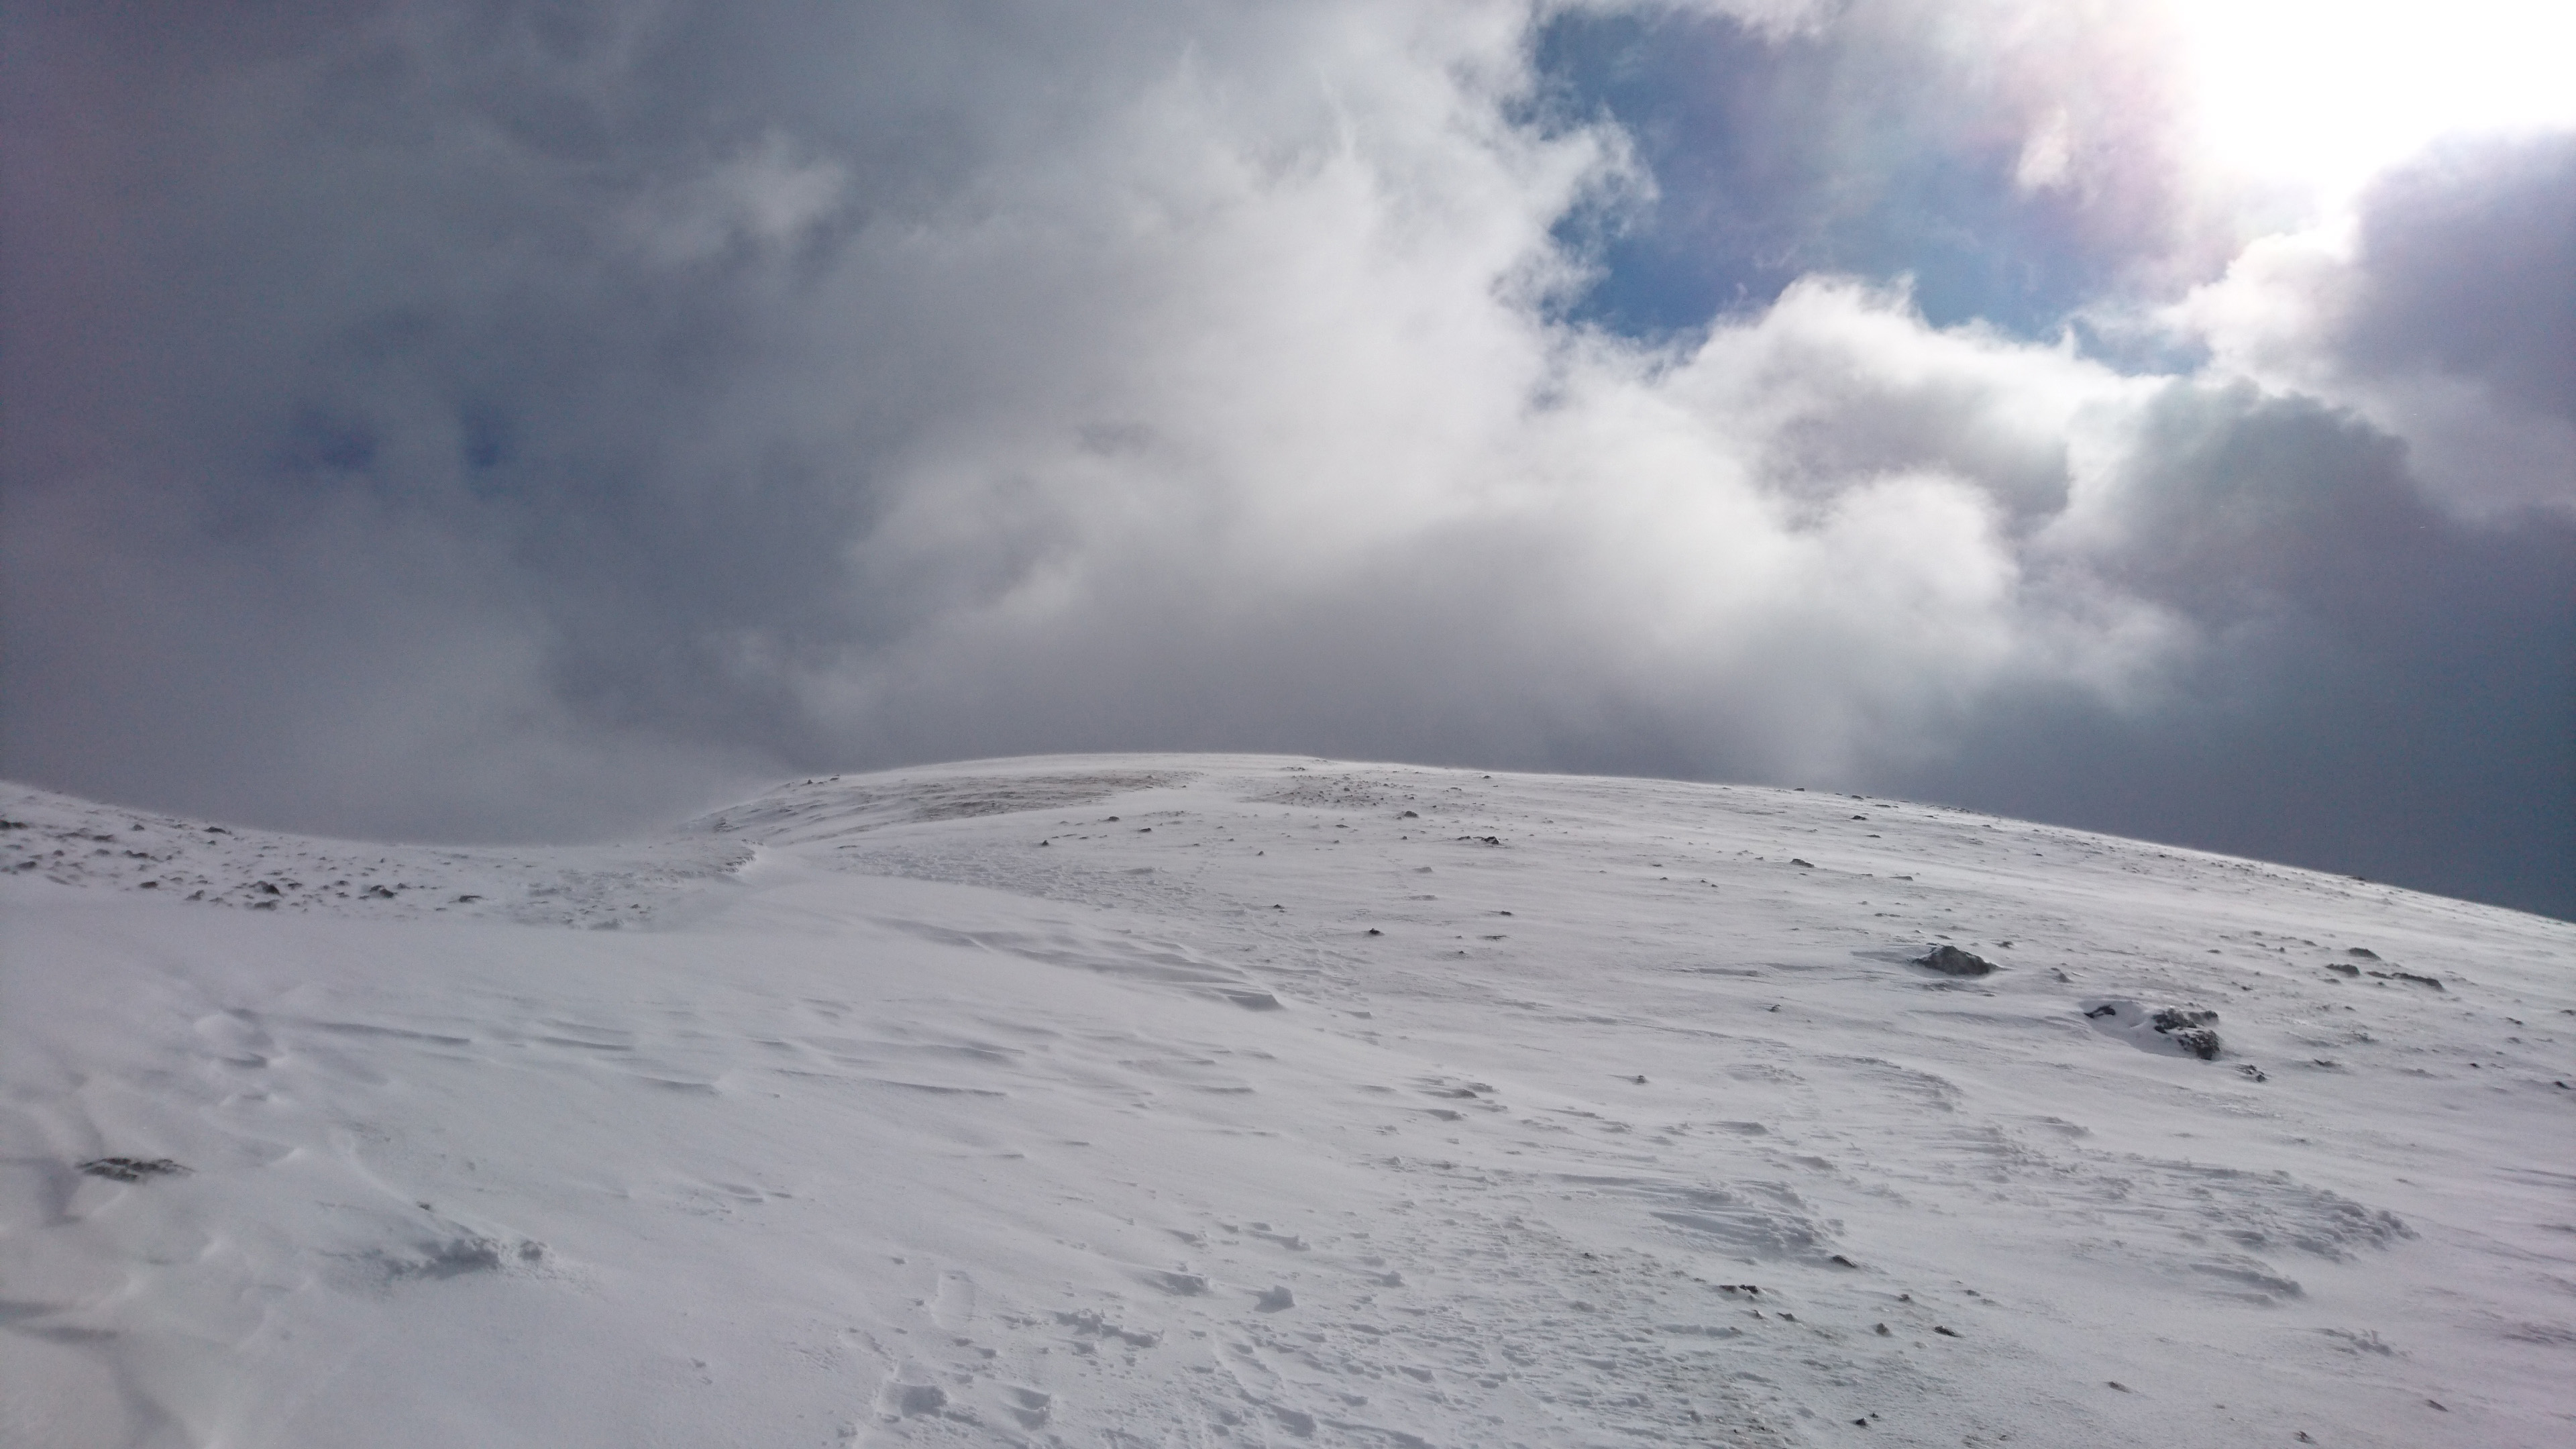 Heading up onto Helvellyn